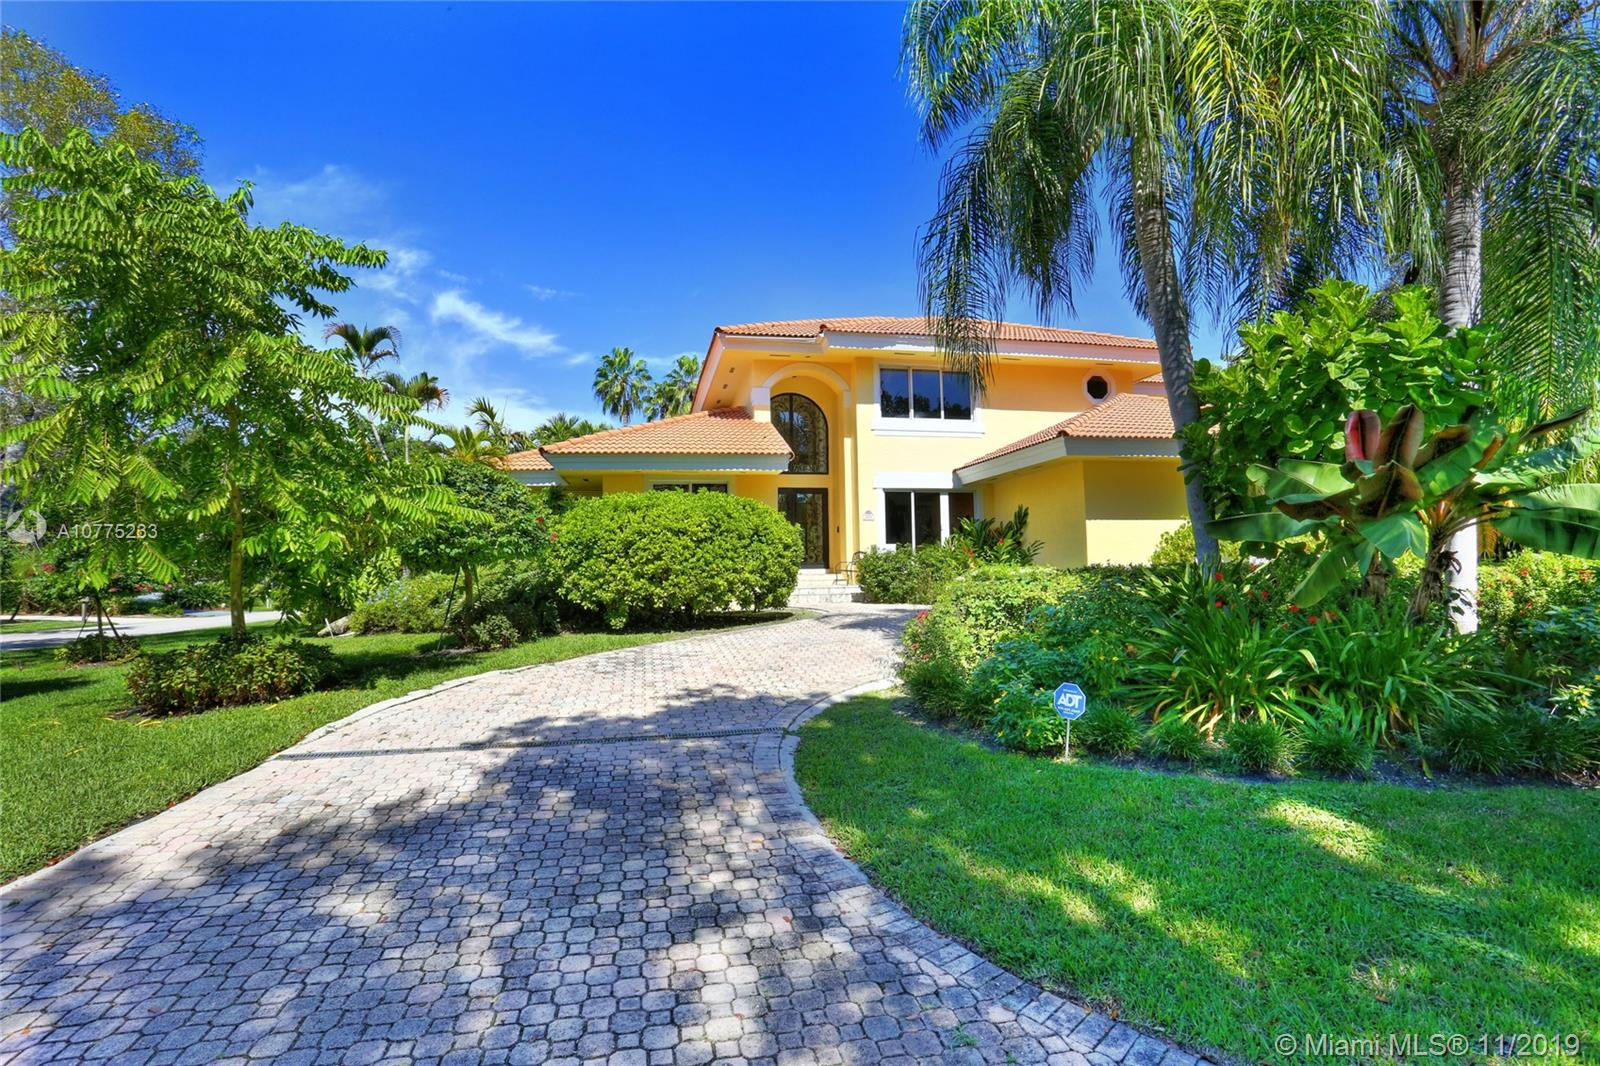 Image 1 For 355 Costanera Rd